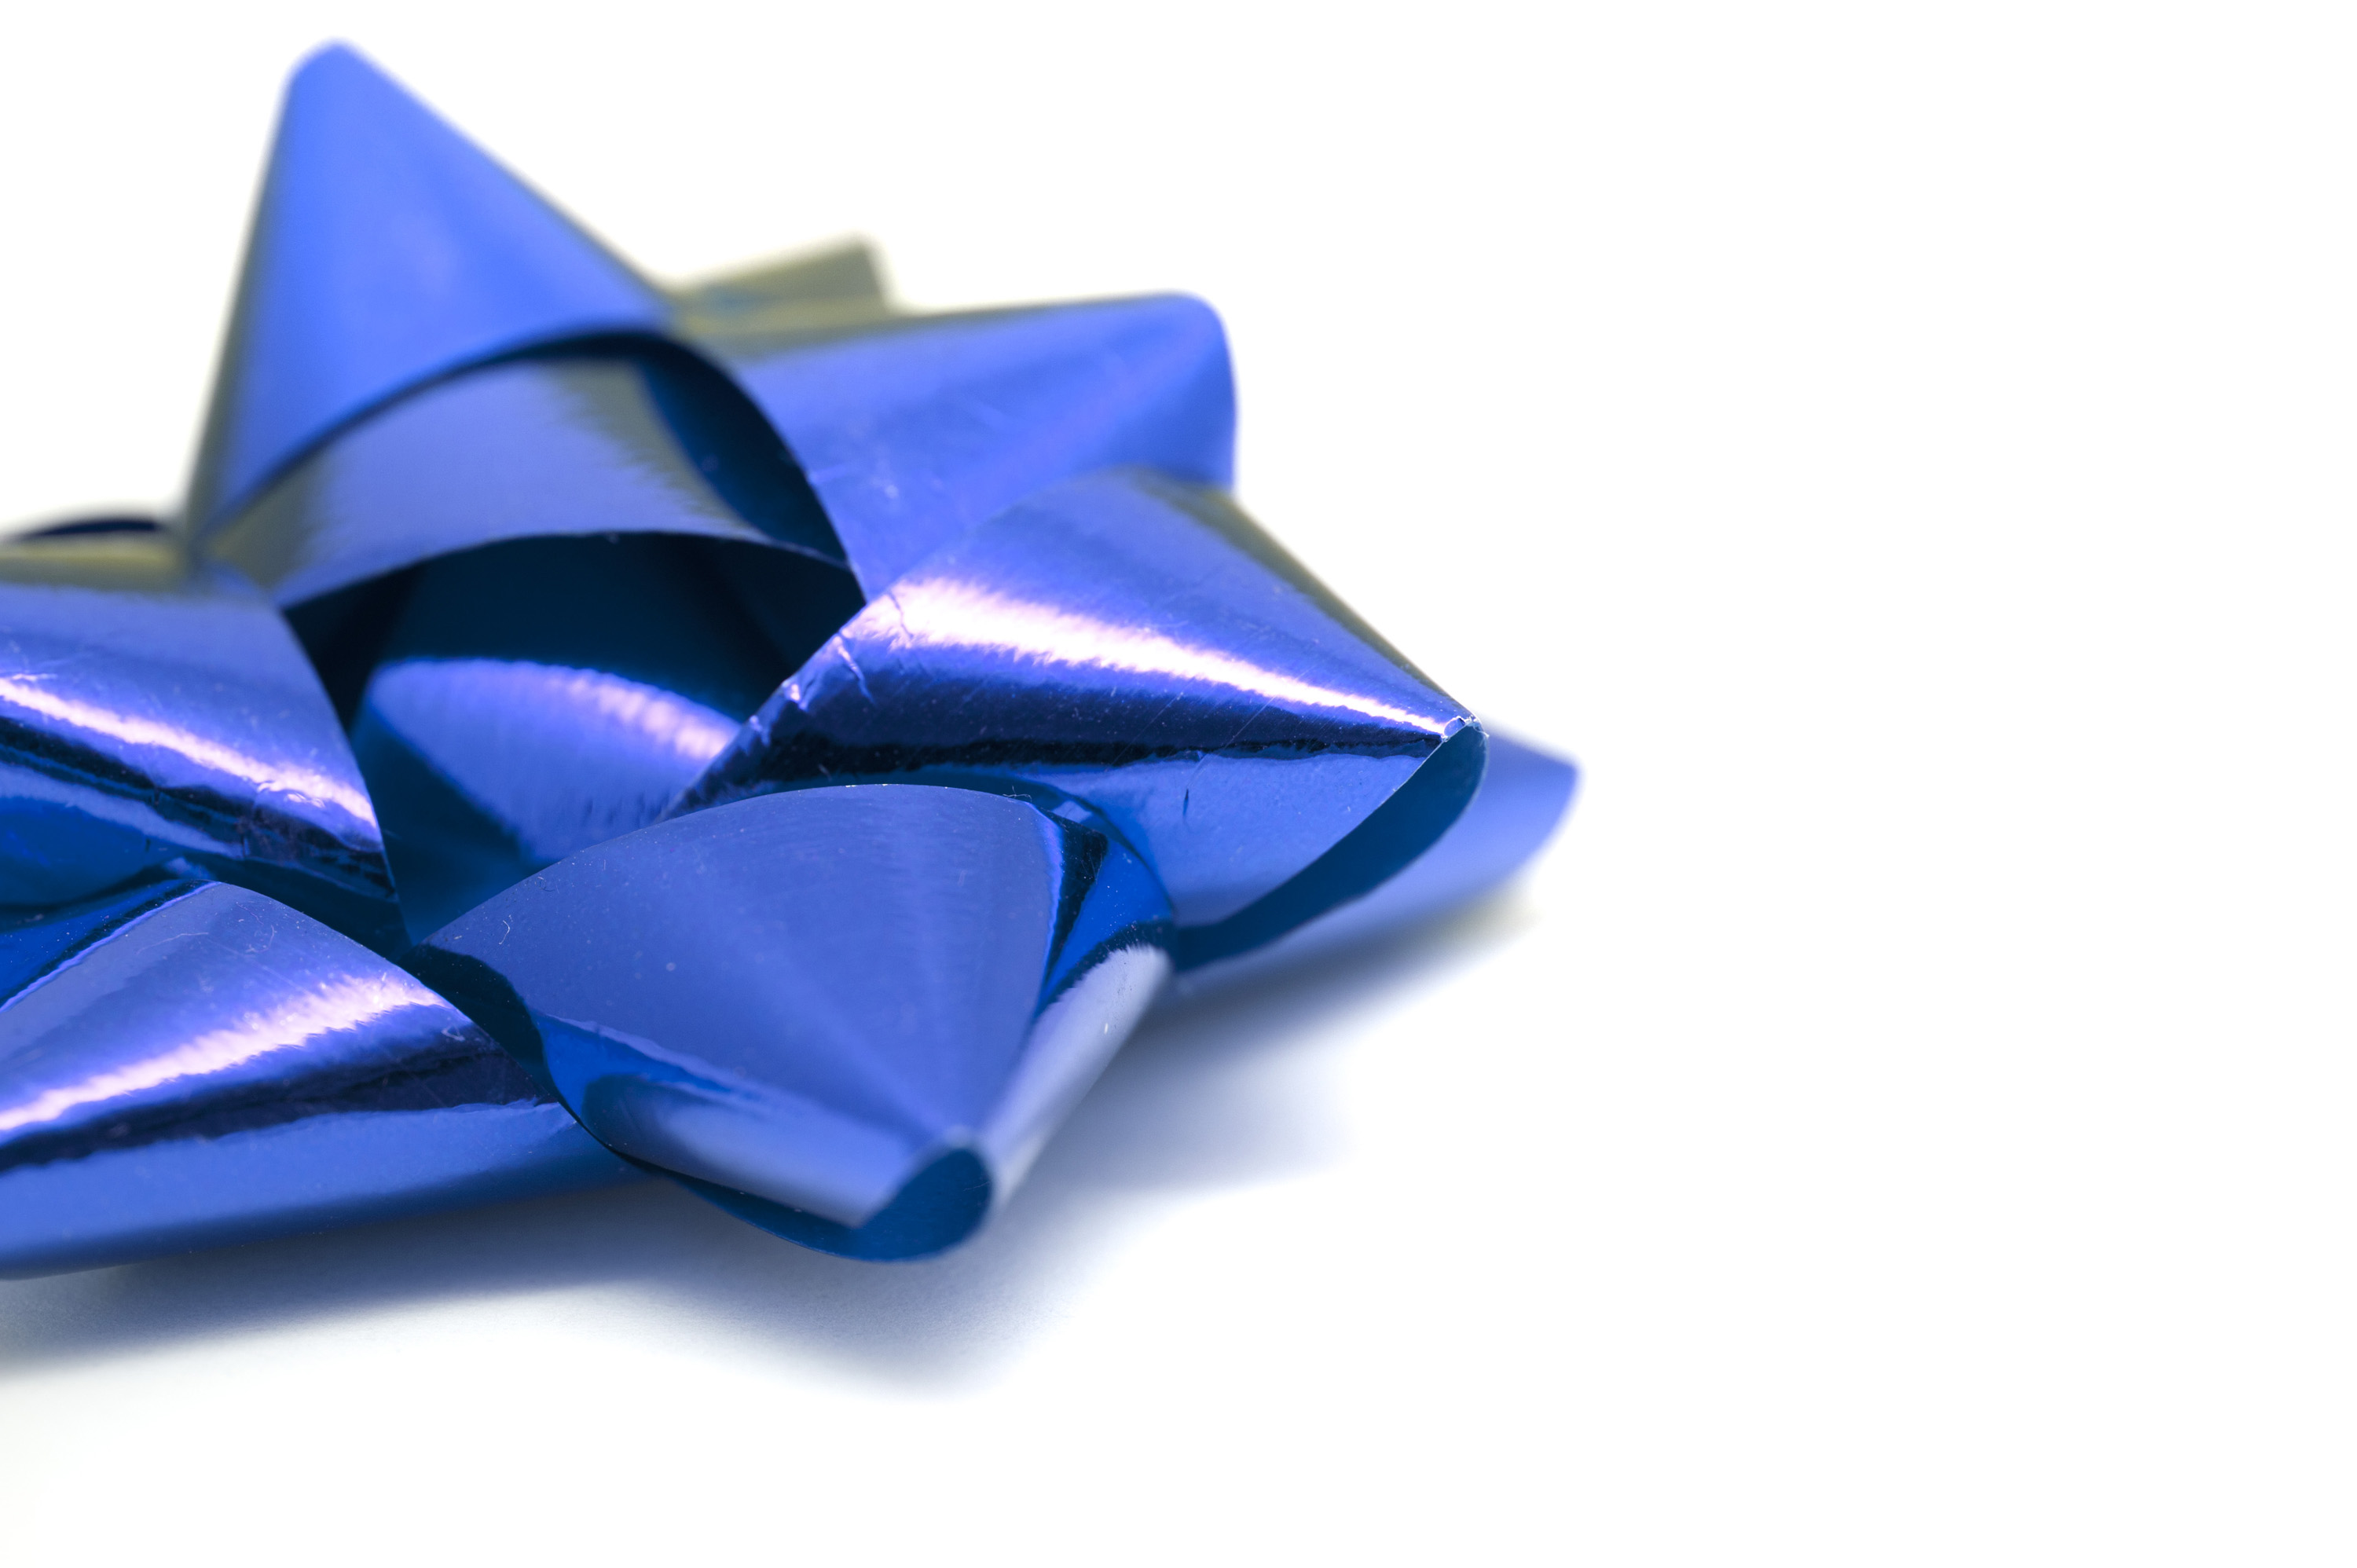 Metallic blue ribbon bow for a gift on a white background with copy space for your message or seasonal greeting